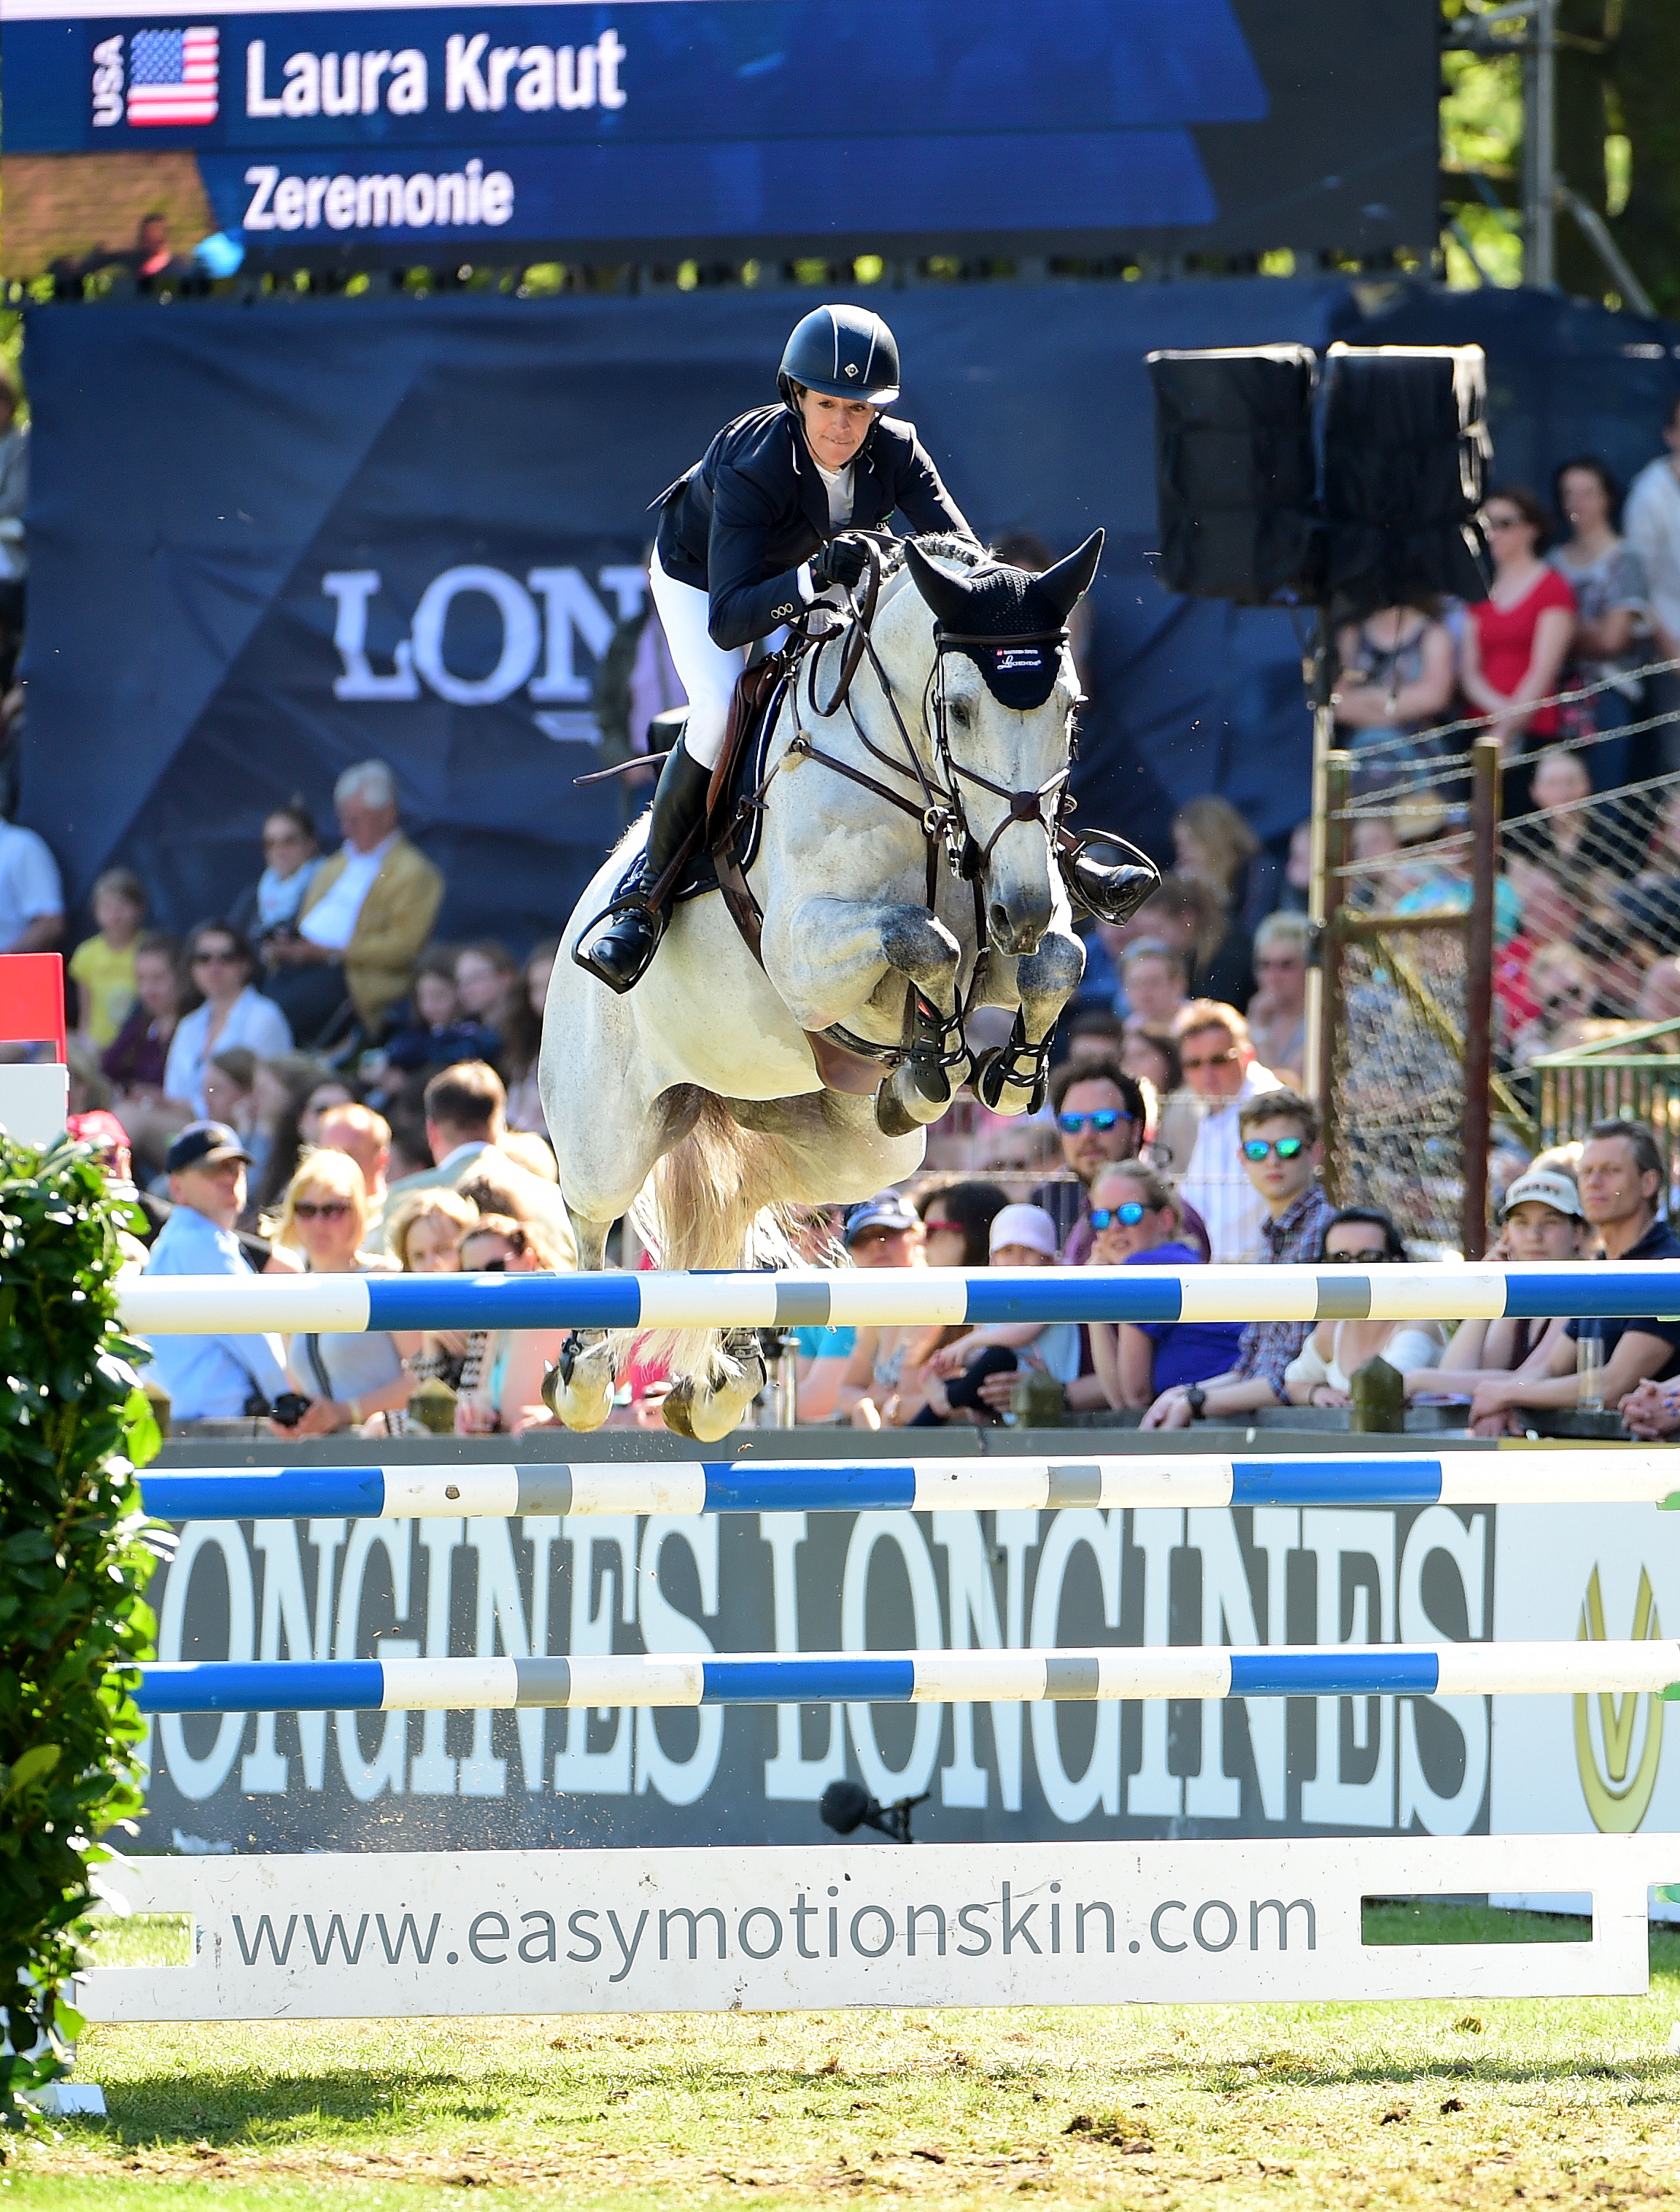 Zeremonie and Laura Kraut World Champions!!  This great pair were part of the Team USA that won the Gold Medal at the World Equestrian Games in Tryon 2018.